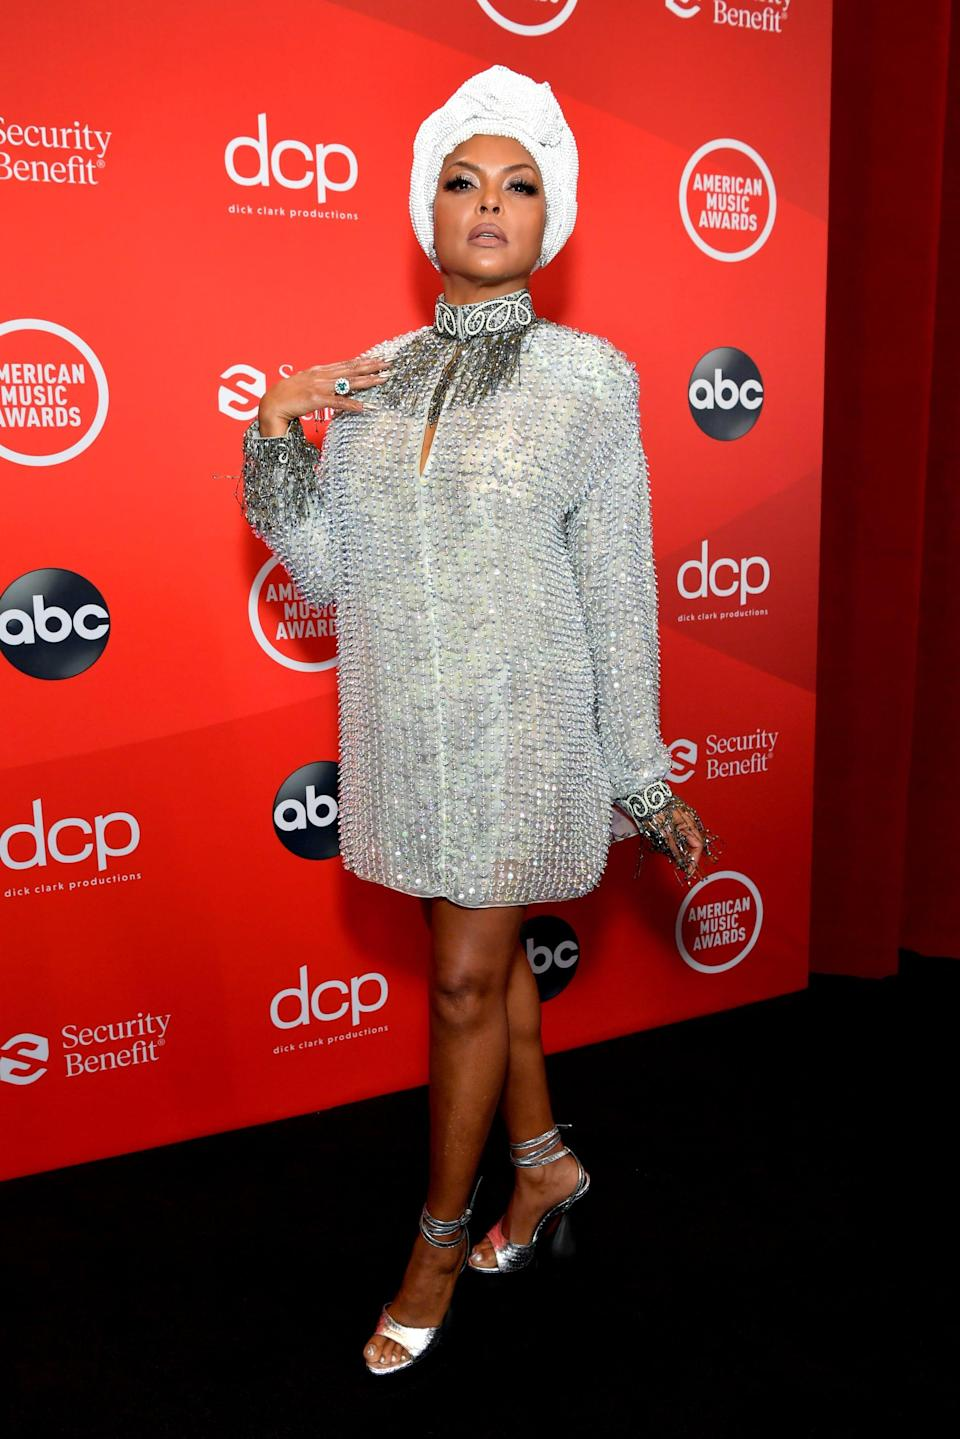 "<p><a href=""https://www.popsugar.com/fashion/taraji-p-henson-american-music-awards-2020-dress-47994656"" class=""link rapid-noclick-resp"" rel=""nofollow noopener"" target=""_blank"" data-ylk=""slk:Wearing Giorgio Armani"">Wearing Giorgio Armani</a> with jewels by Roberto Coin and Tiffany & Co. and Tom Ford heels.</p>"